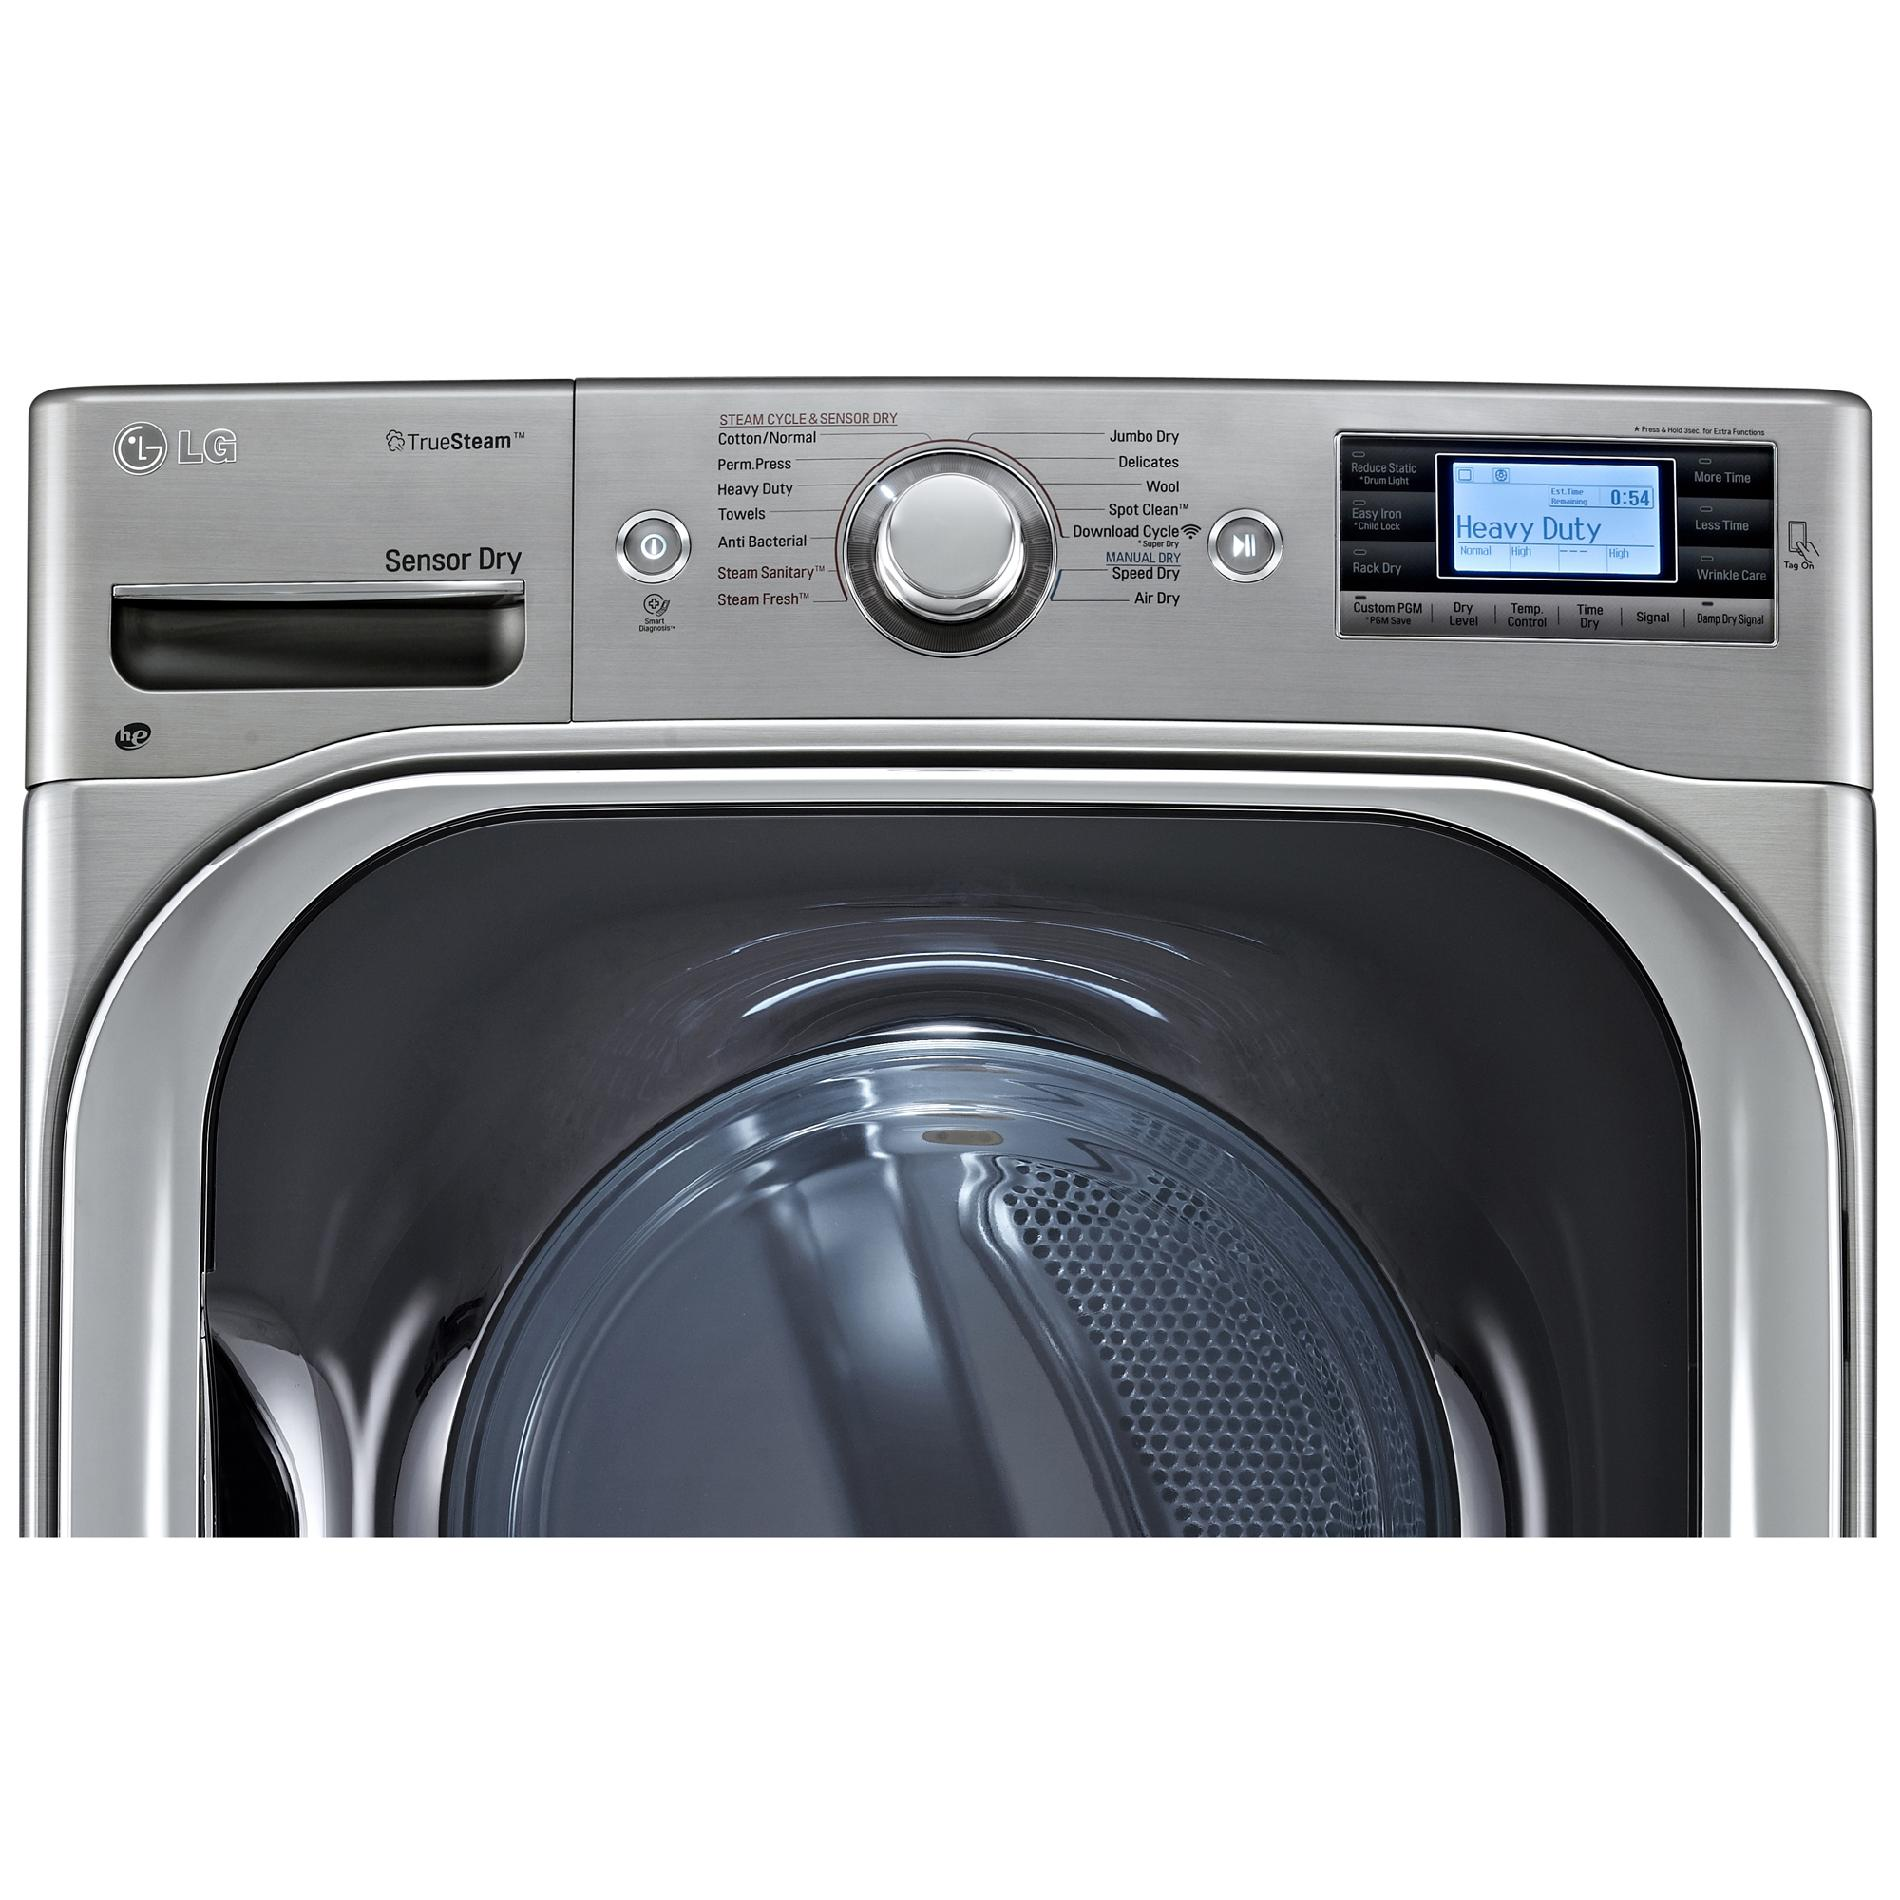 LG DLEX8500V 9.0 cu. ft. Mega Capacity Electric Dryer with Steam Technology